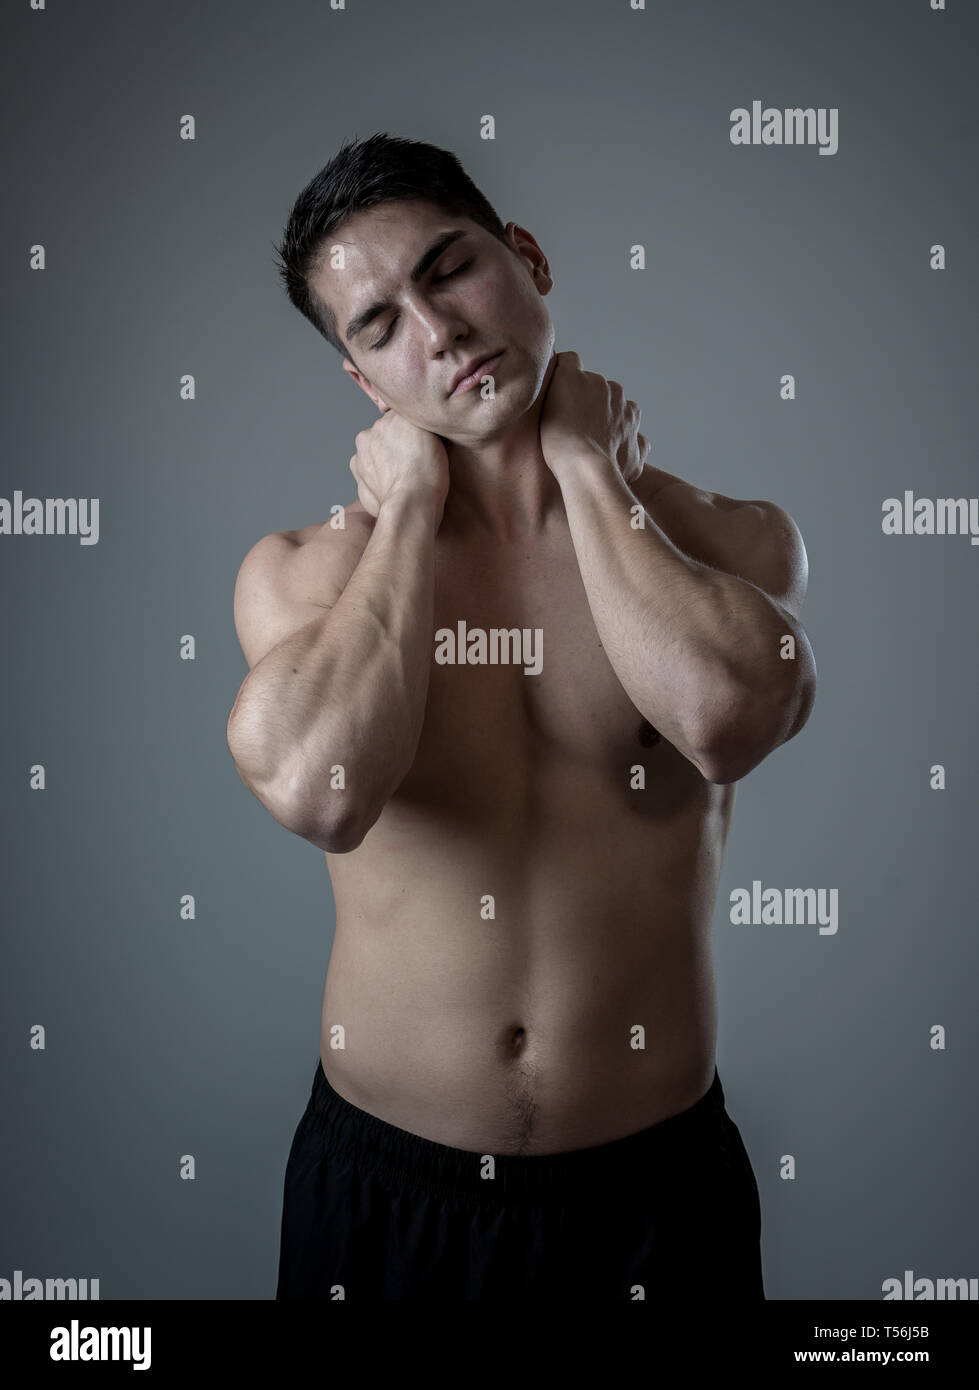 Young muscular fit man touching and grabbing neck and upper back suffering cervical pain after workout. Isolated on neutral background. In sport injur - Stock Image